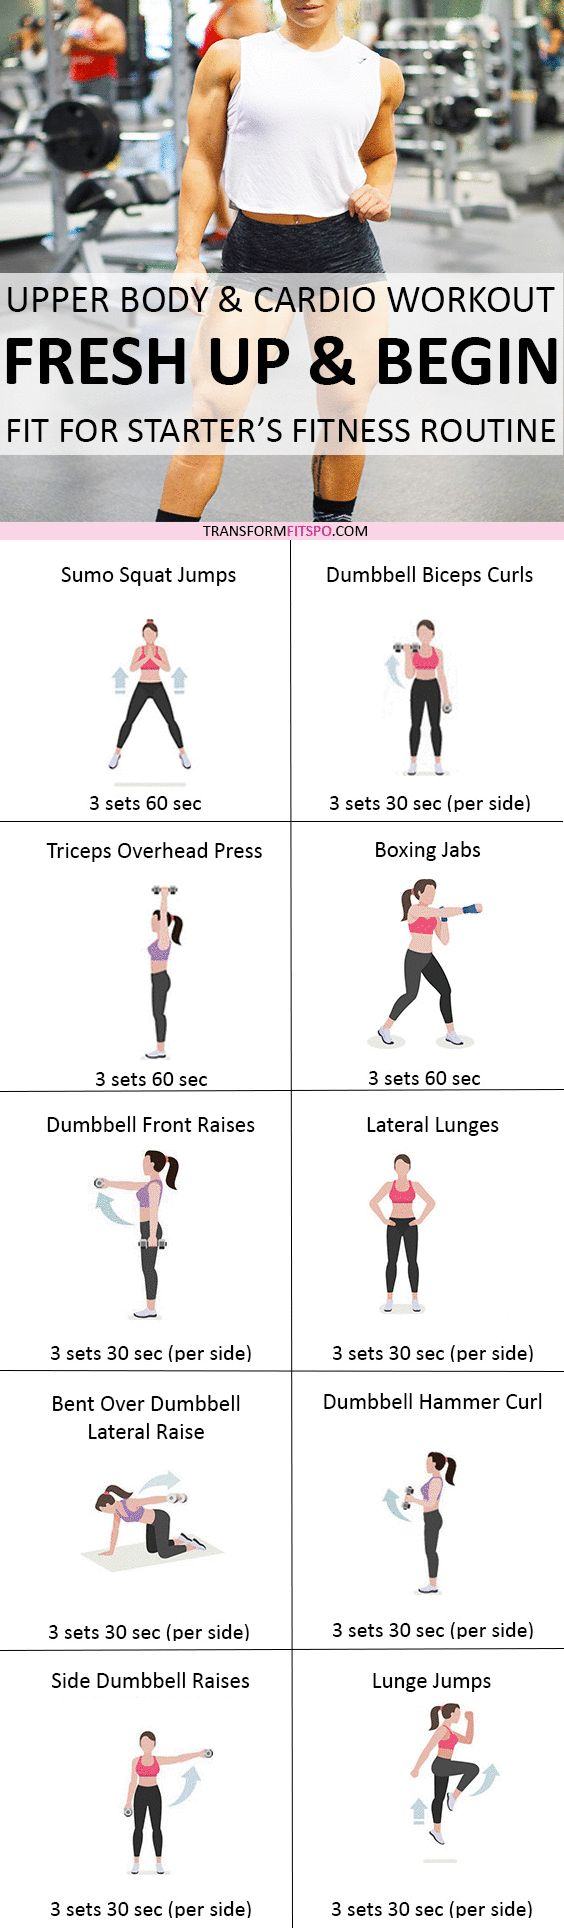 Repin if this workout transformed your body! Read the post for all the info!